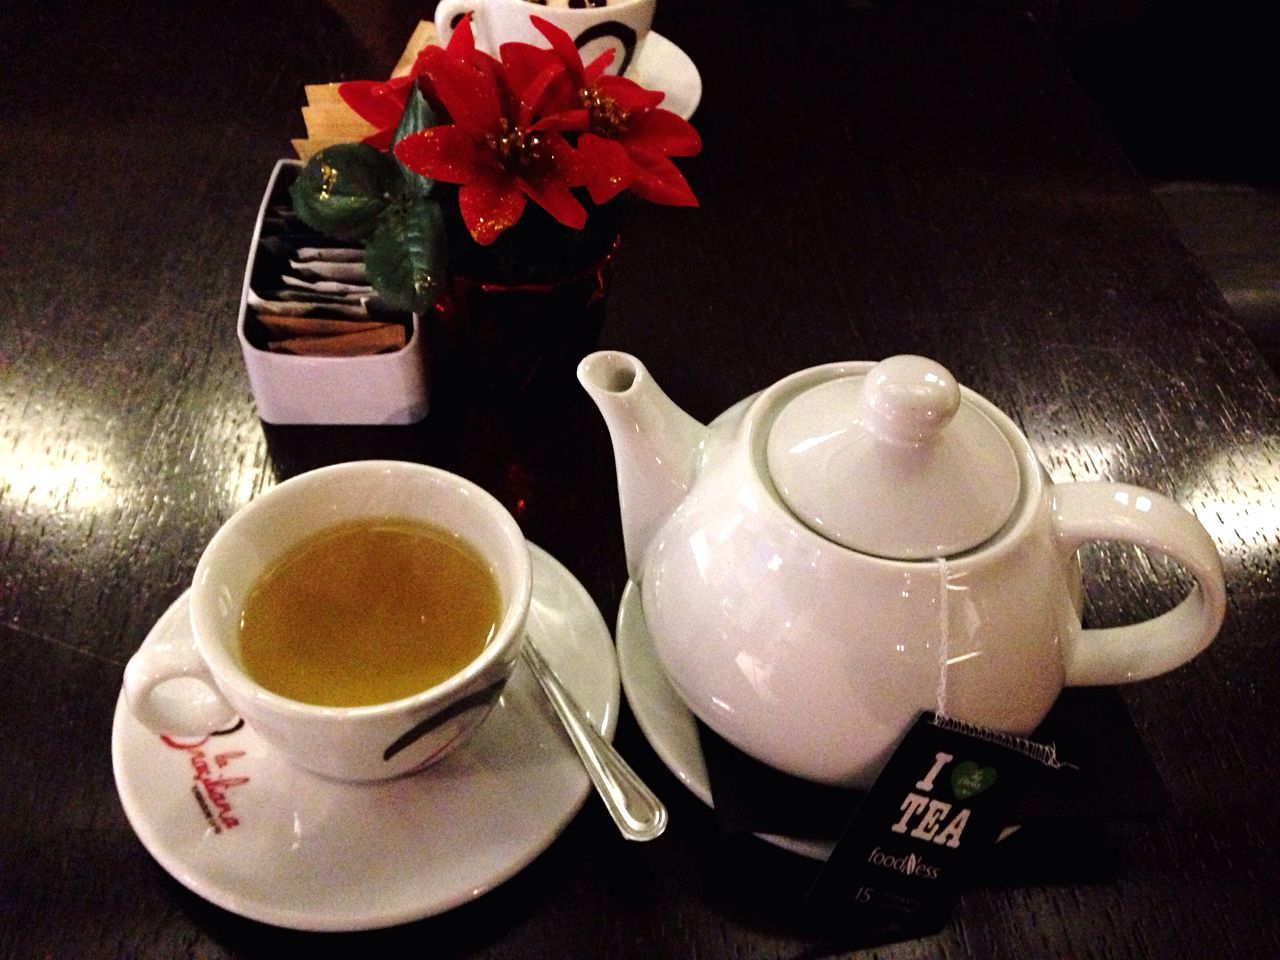 drink, refreshment, tea cup, food and drink, saucer, tea - hot drink, cup, teapot, freshness, table, coffee cup, indoors, non-alcoholic beverage, beverage, no people, healthy eating, sugar cube, flower, plate, breakfast, herbal tea, close-up, food, day